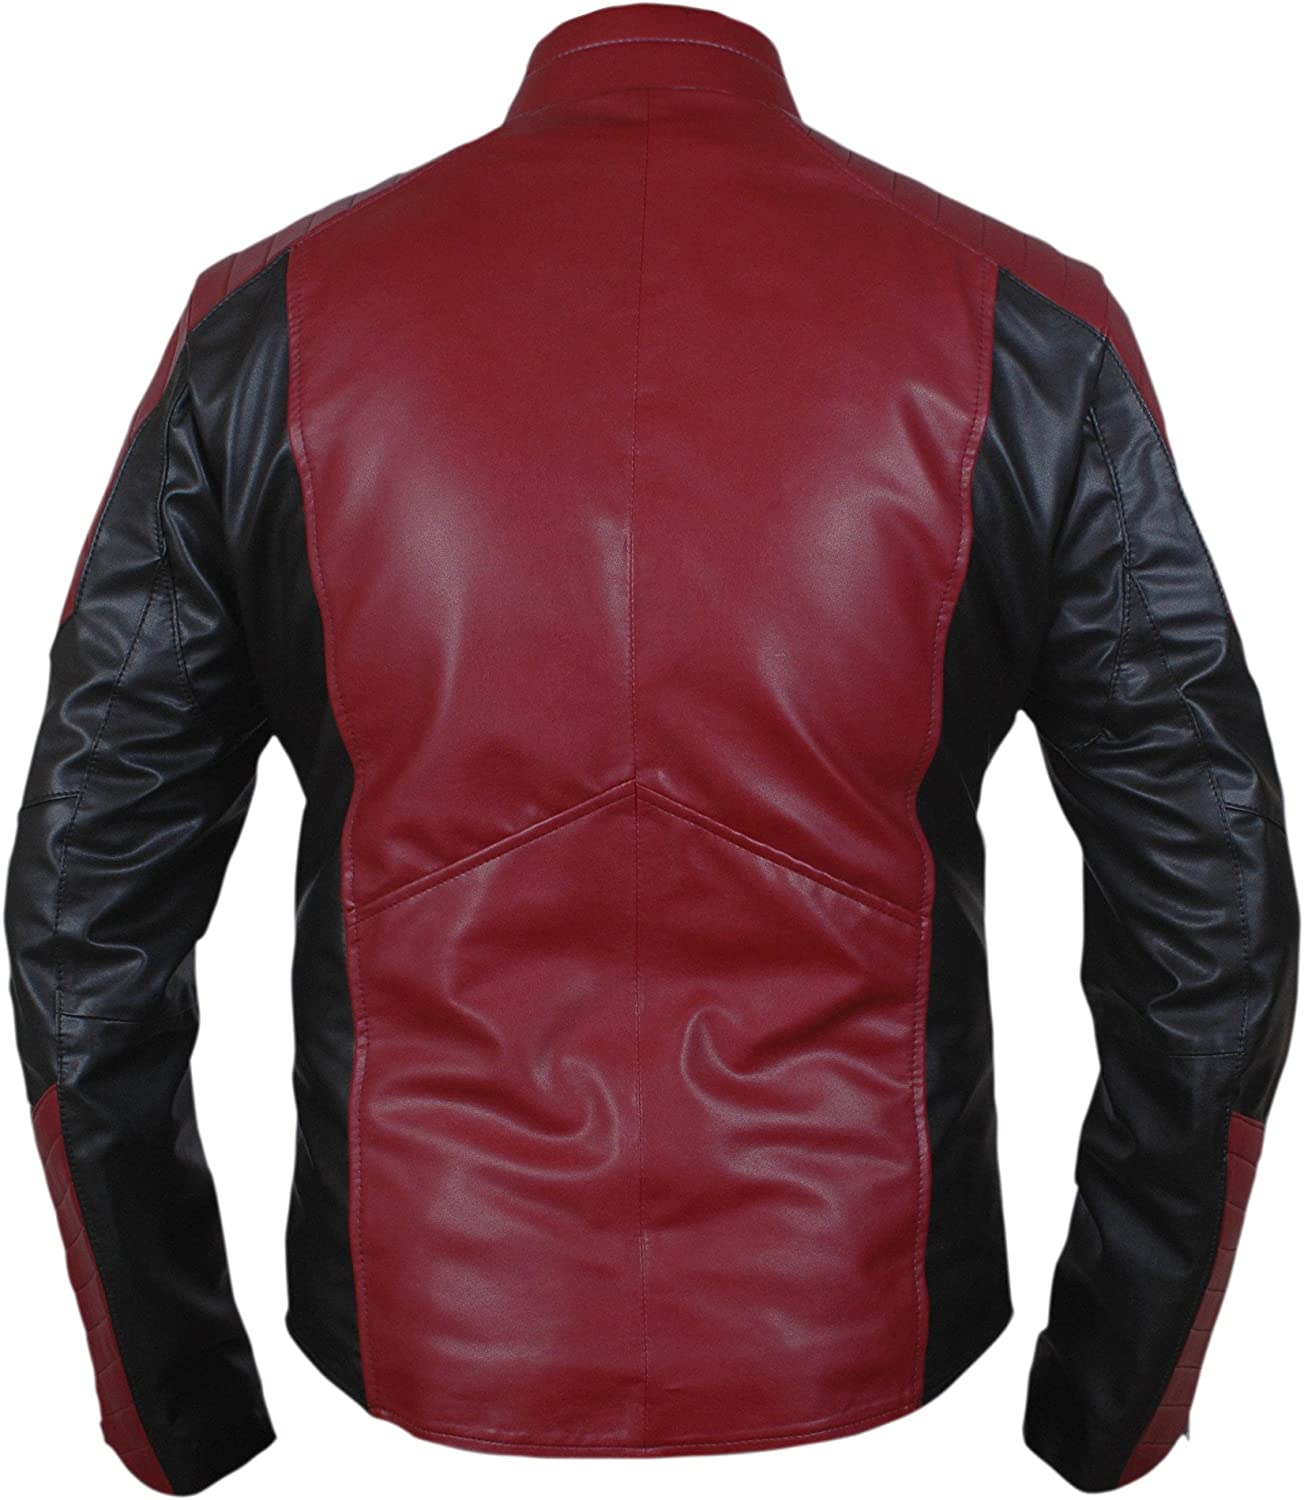 Flesh /& Hide F/&H Mens Superhero Amazing Spider Maroon /& Black Genuine Leather Jacket